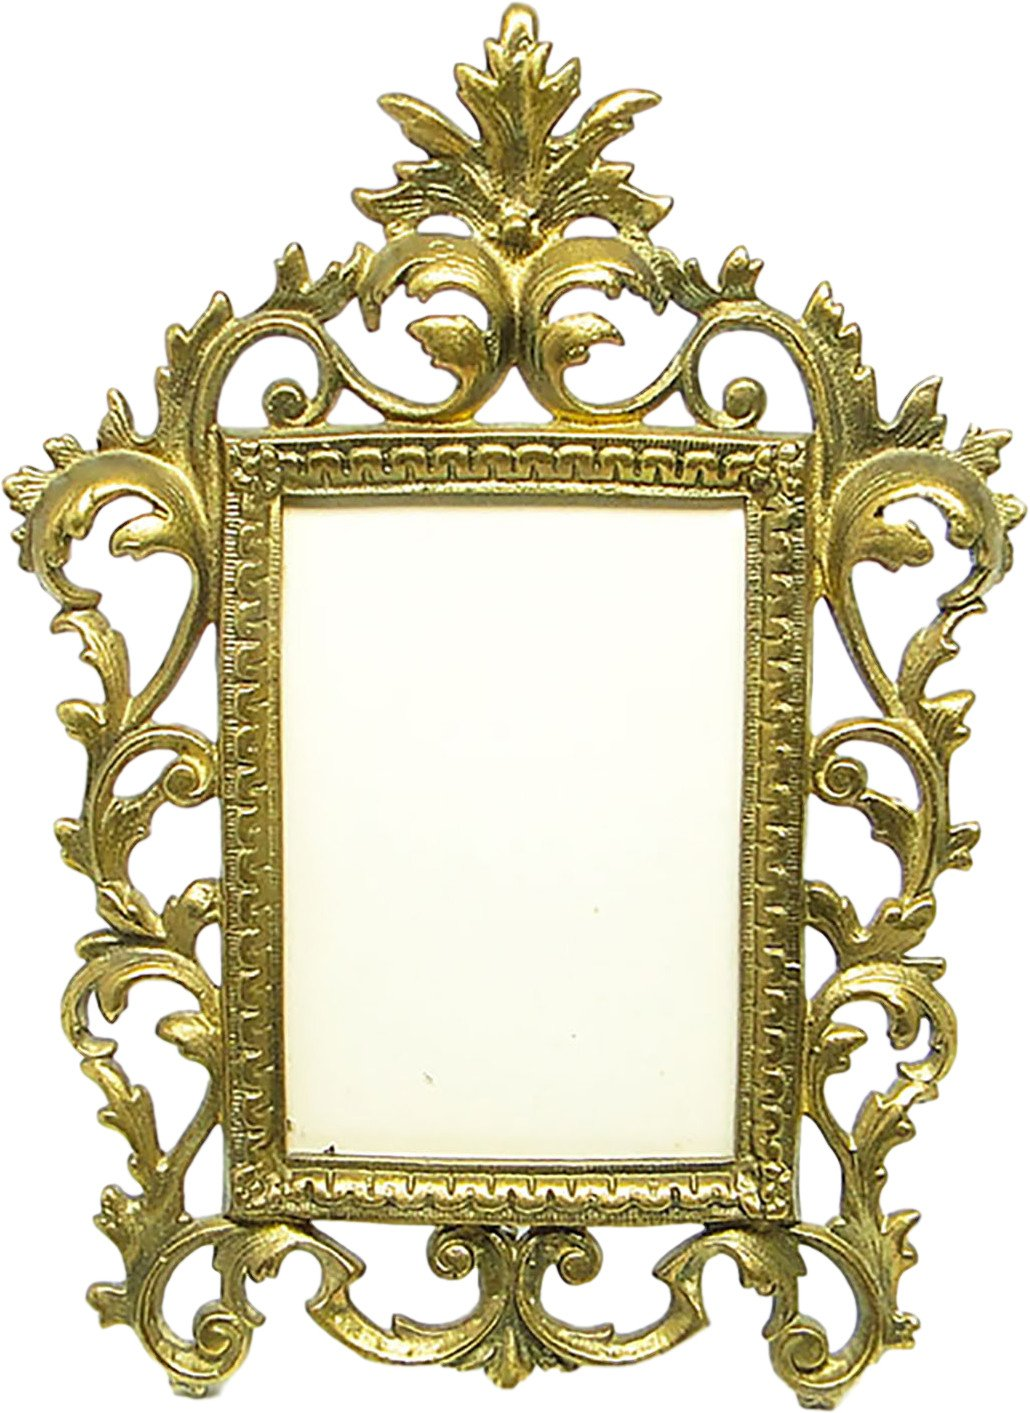 Frame, France, early 20th C.